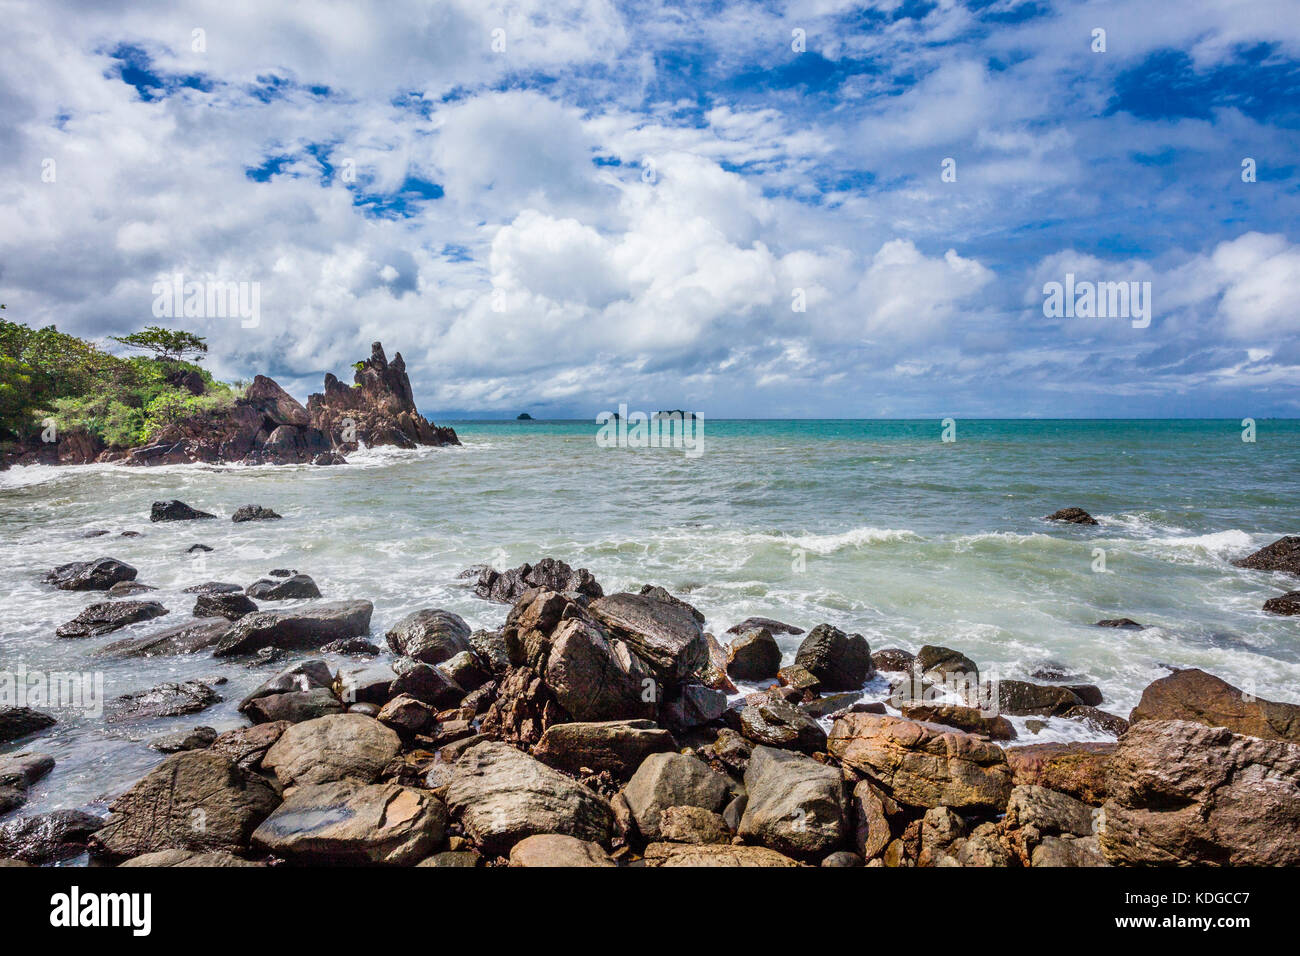 Thailand, Trat Province, tropical island of Koh Chang in the Gulf of Thailand, rocky coast at Cape Chai Chet - Stock Image